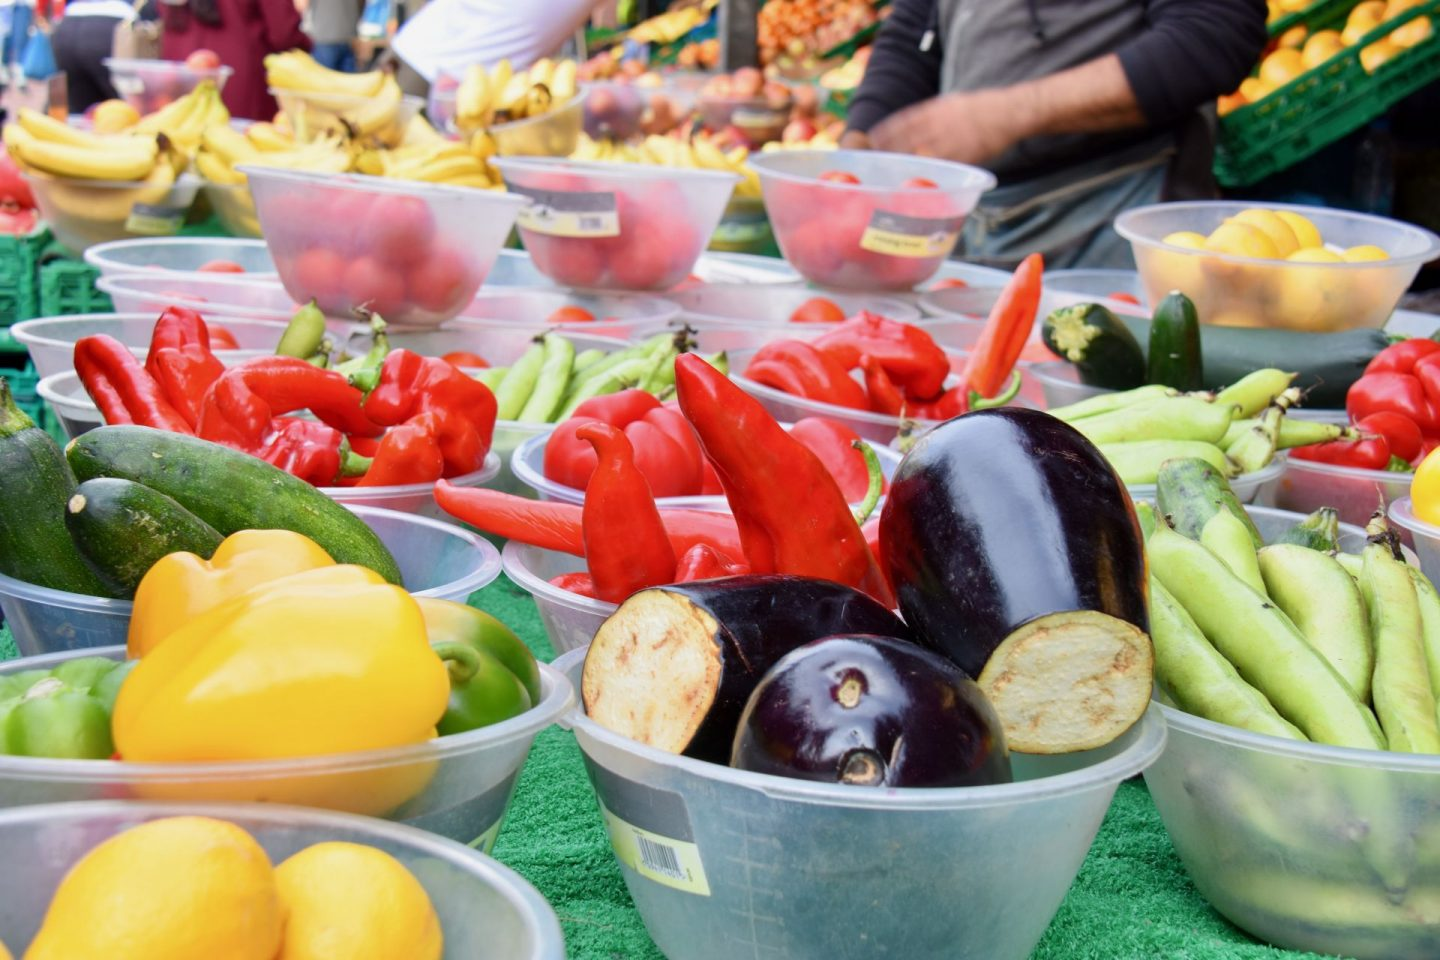 A selection of brightly coloured vegetables on an outside stall at Leeds Kirkgate market showing aubergines, different types of peppers, courgettes and tomoatoes, with some bananas in the background